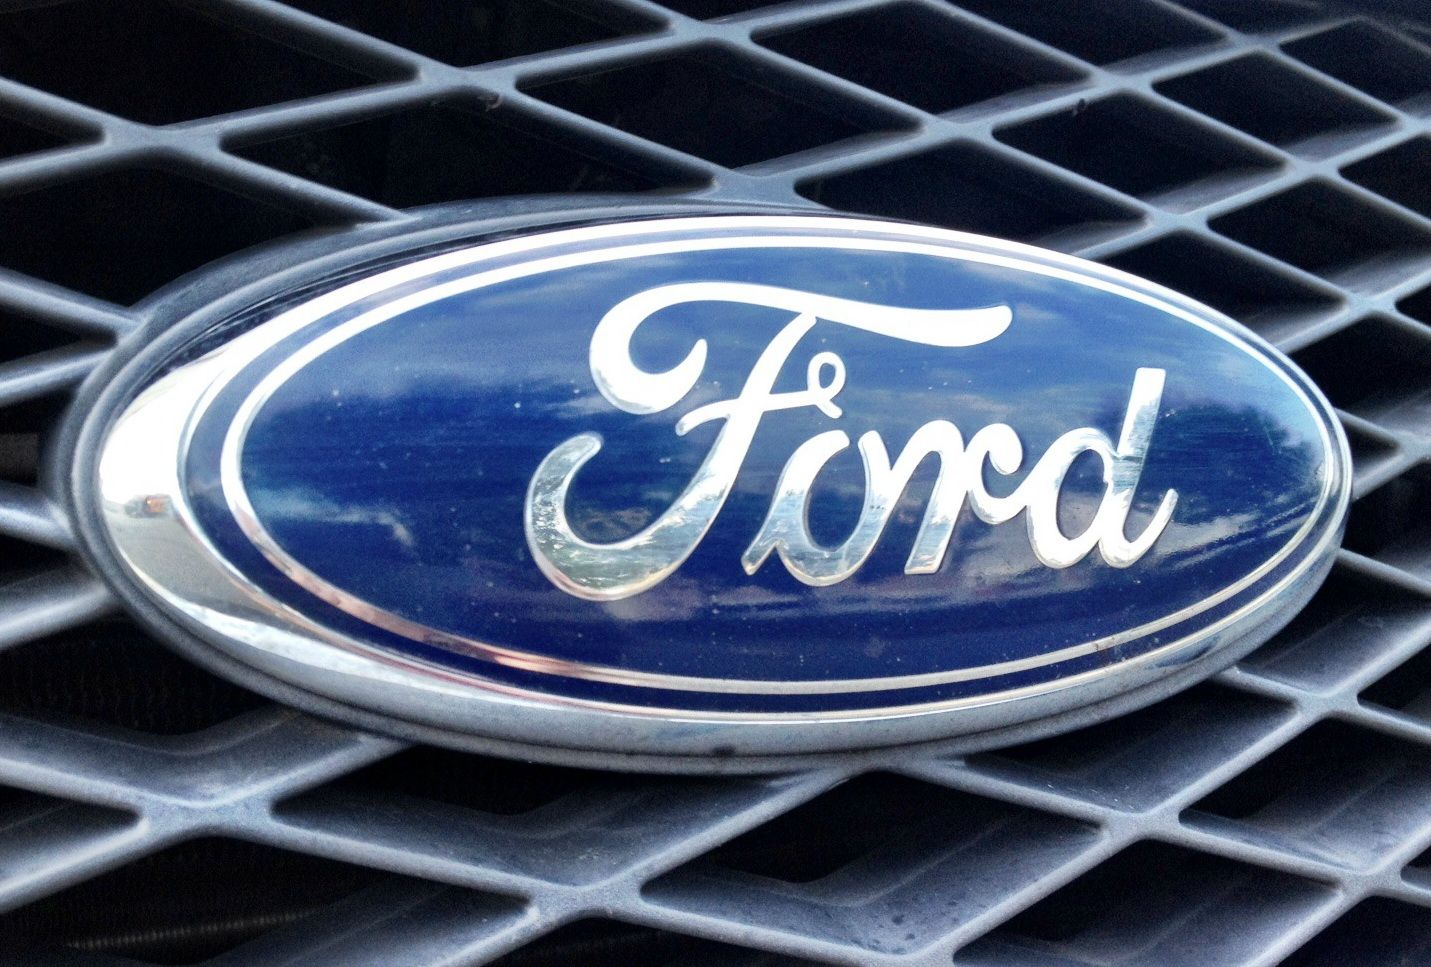 Ford Logo - Ford Logo, Ford Car Symbol Meaning and History | Car Brand Names.com